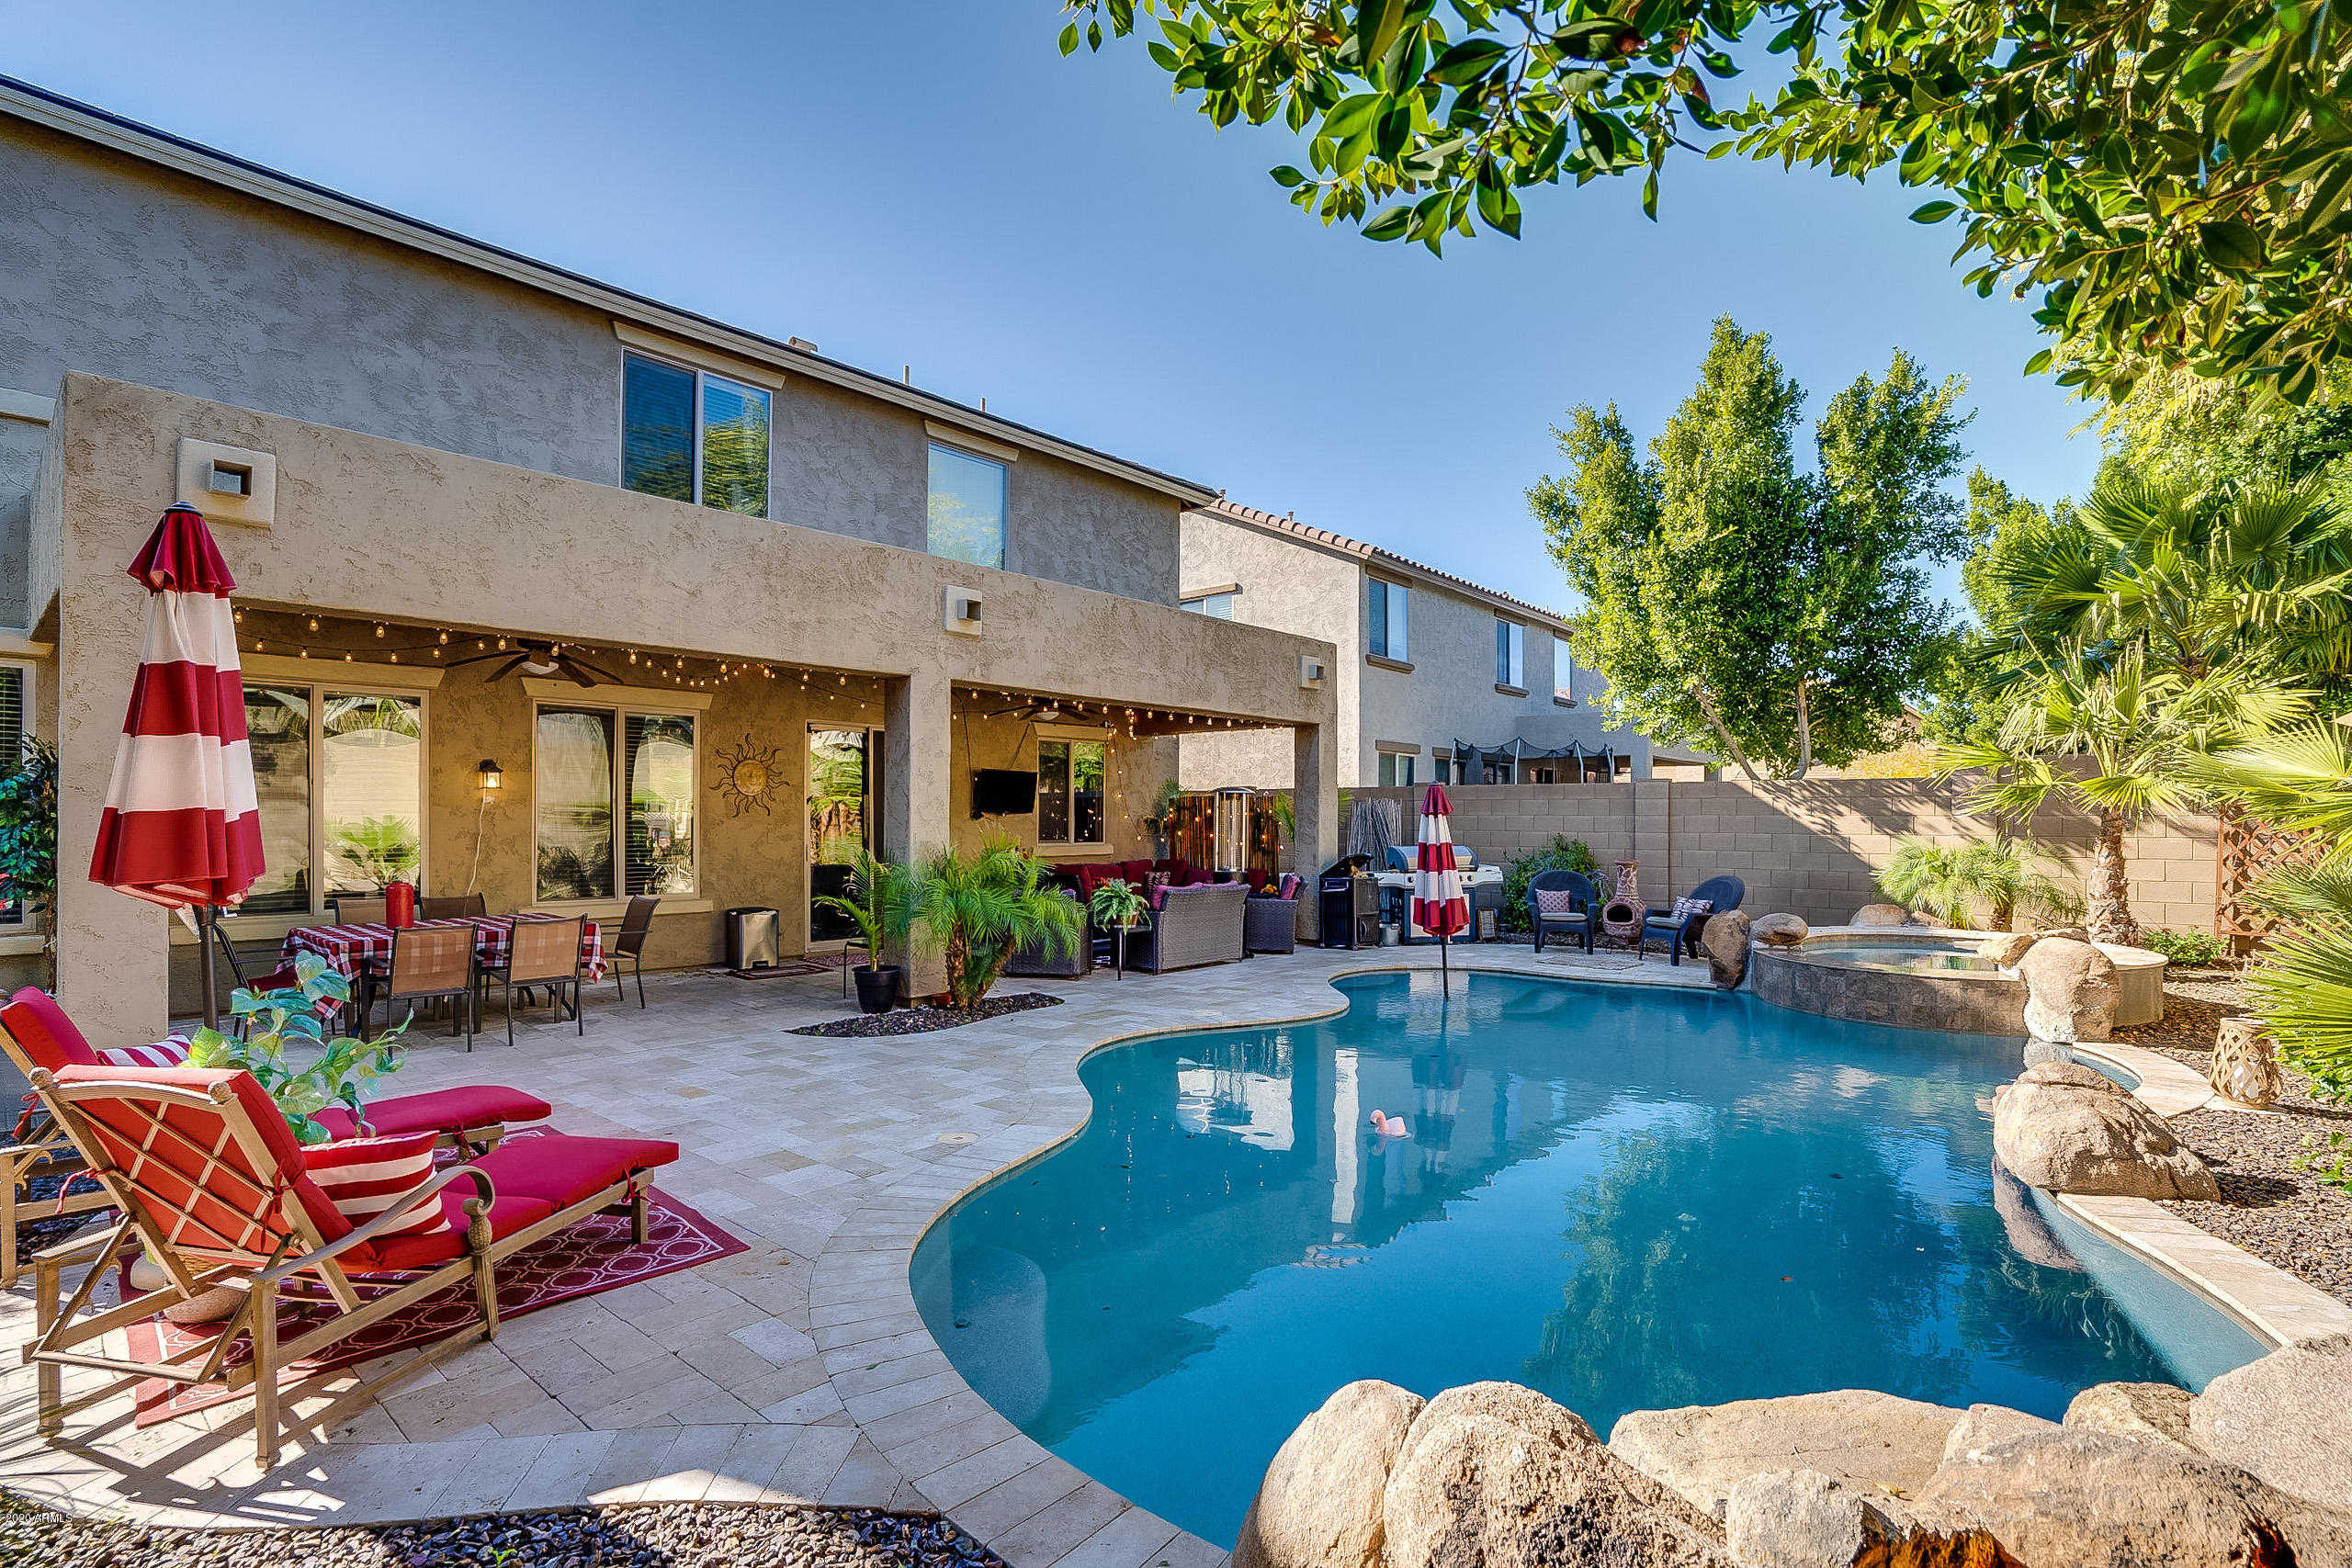 $475,000 - 5Br/4Ba - Home for Sale in Stetson Valley, Phoenix